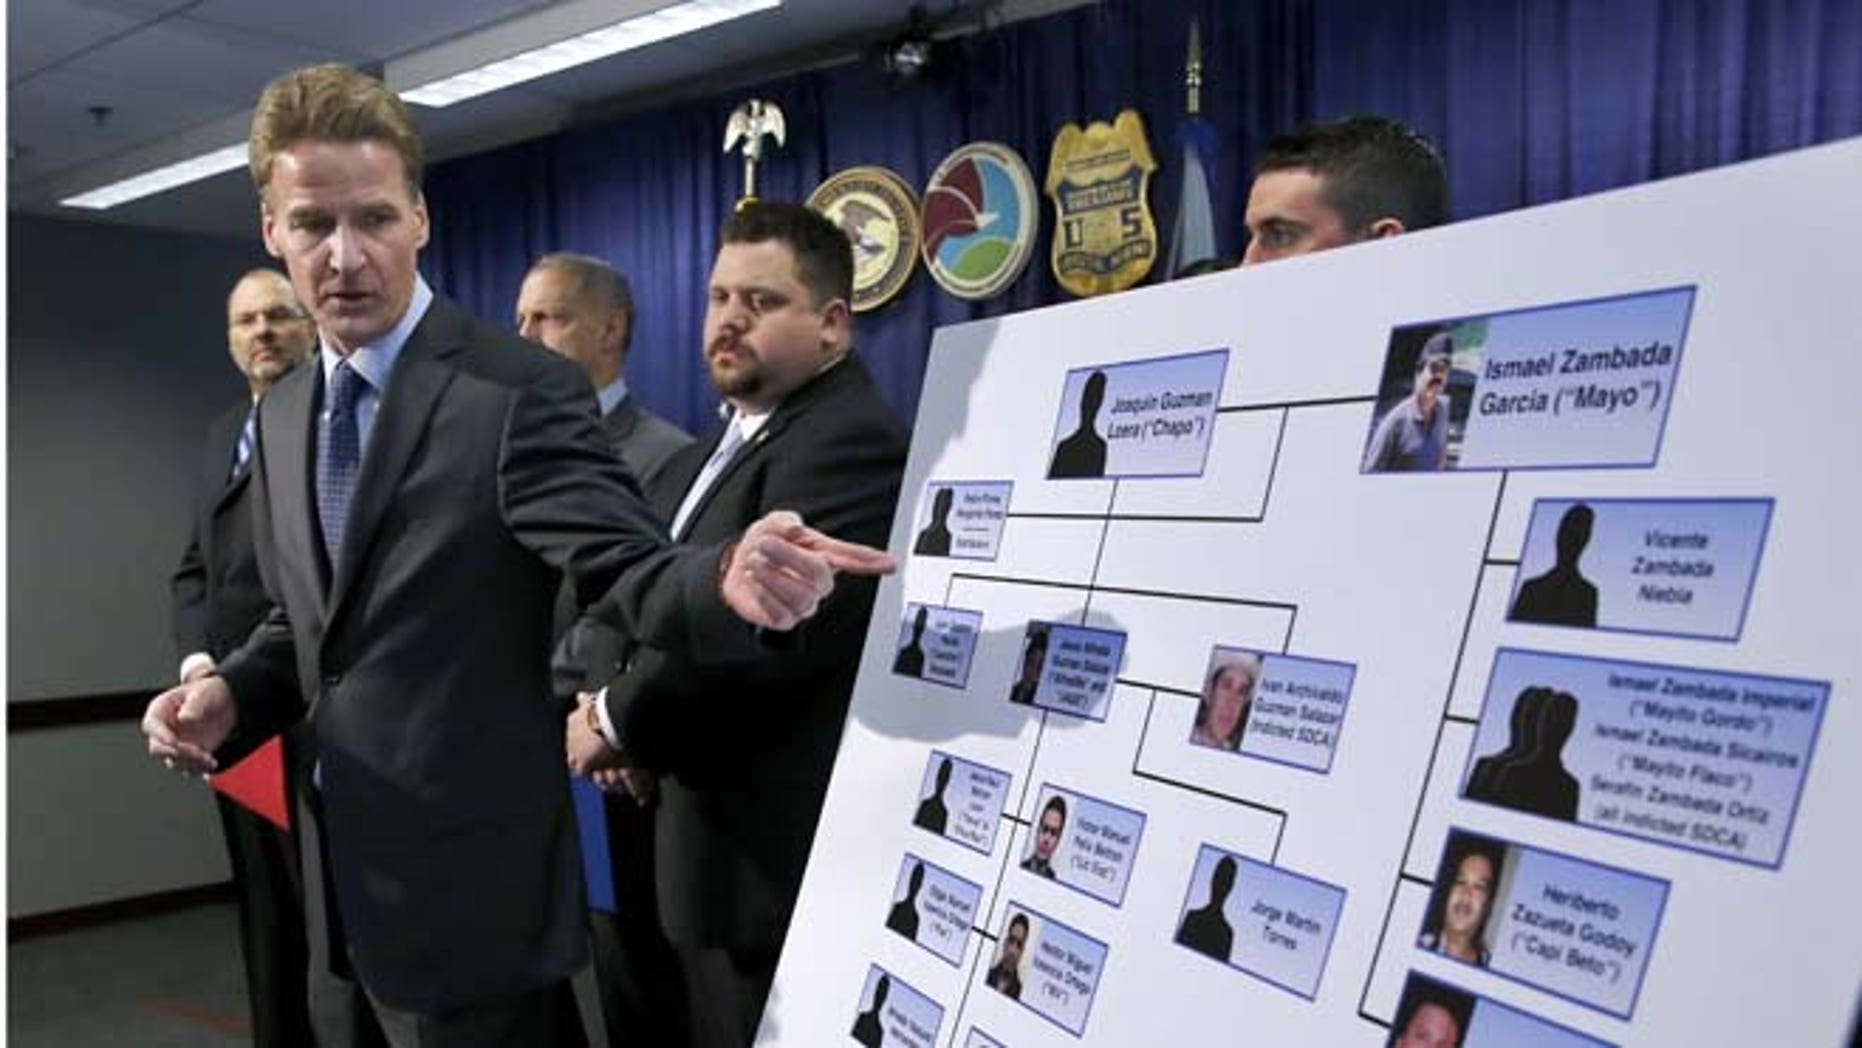 """U.S. Attorney Zachary T. Fardon makes reference to a chart of know Mexico-based Sinaloa Cartel members, during a news conference after twin brothers Pedro and Margarito Flores were sentenced to 14 years for their drug related activities in the cartel, Tuesday, Jan. 27, 2015, in Chicago. Fardon characterized the Flores brothers cooperation in bringing down the cartel as extraordinary. He says their reduced sentences should illustrate to criminals that, """"You can right some of what you did wrong, by helping the government."""" (AP Photo/Charles Rex Arbogast)"""